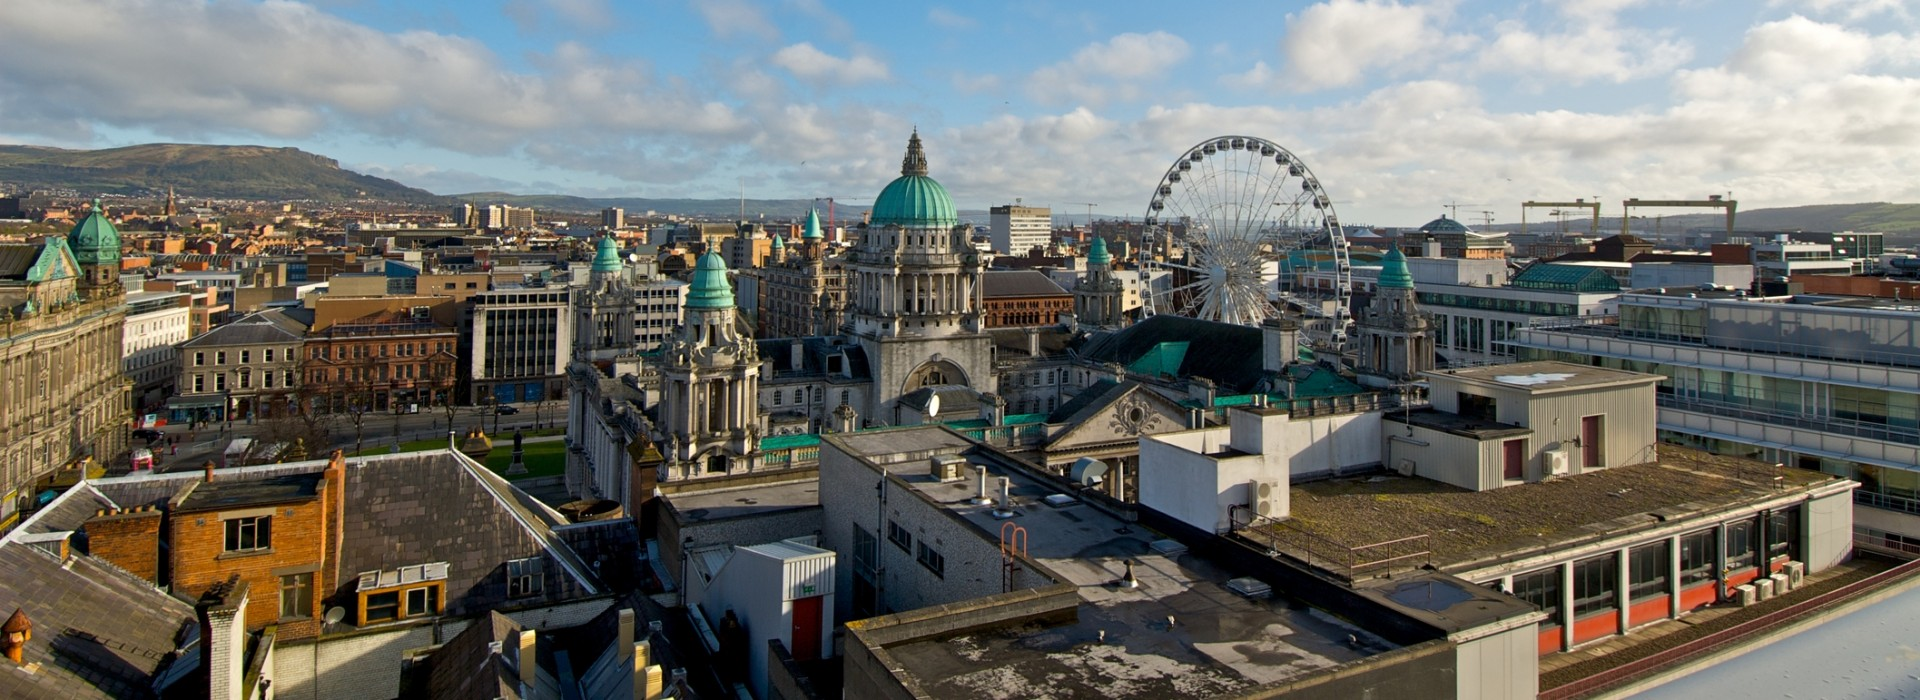 Travelling Belfast - Tours and Trips in Belfast